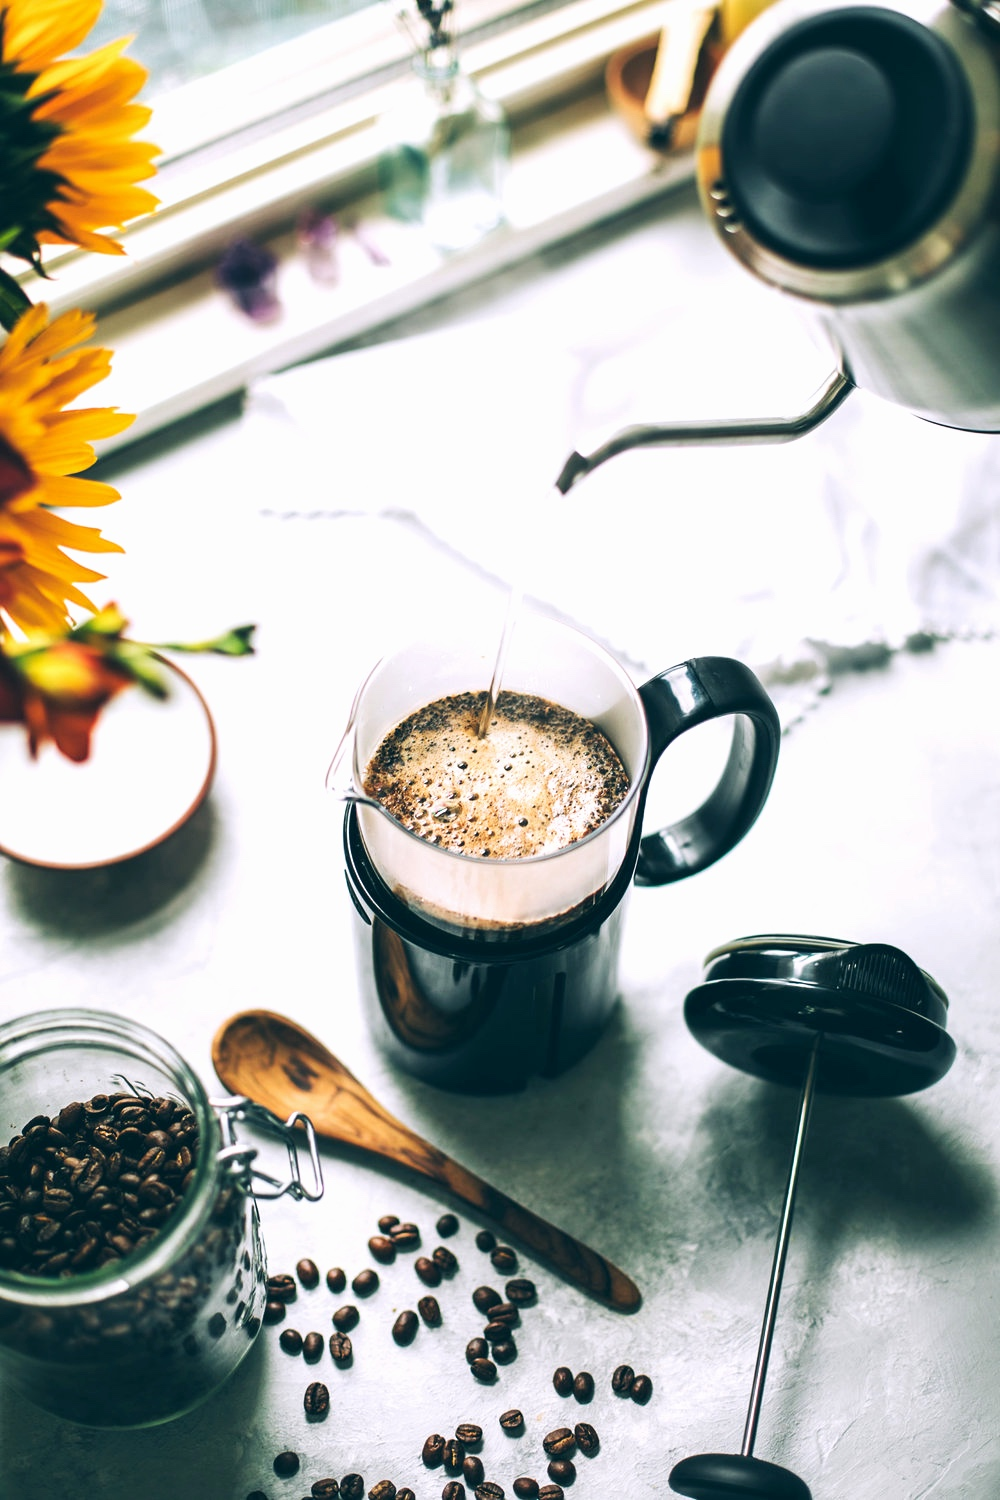 French Press coffee by Lariat Coffee Roasters